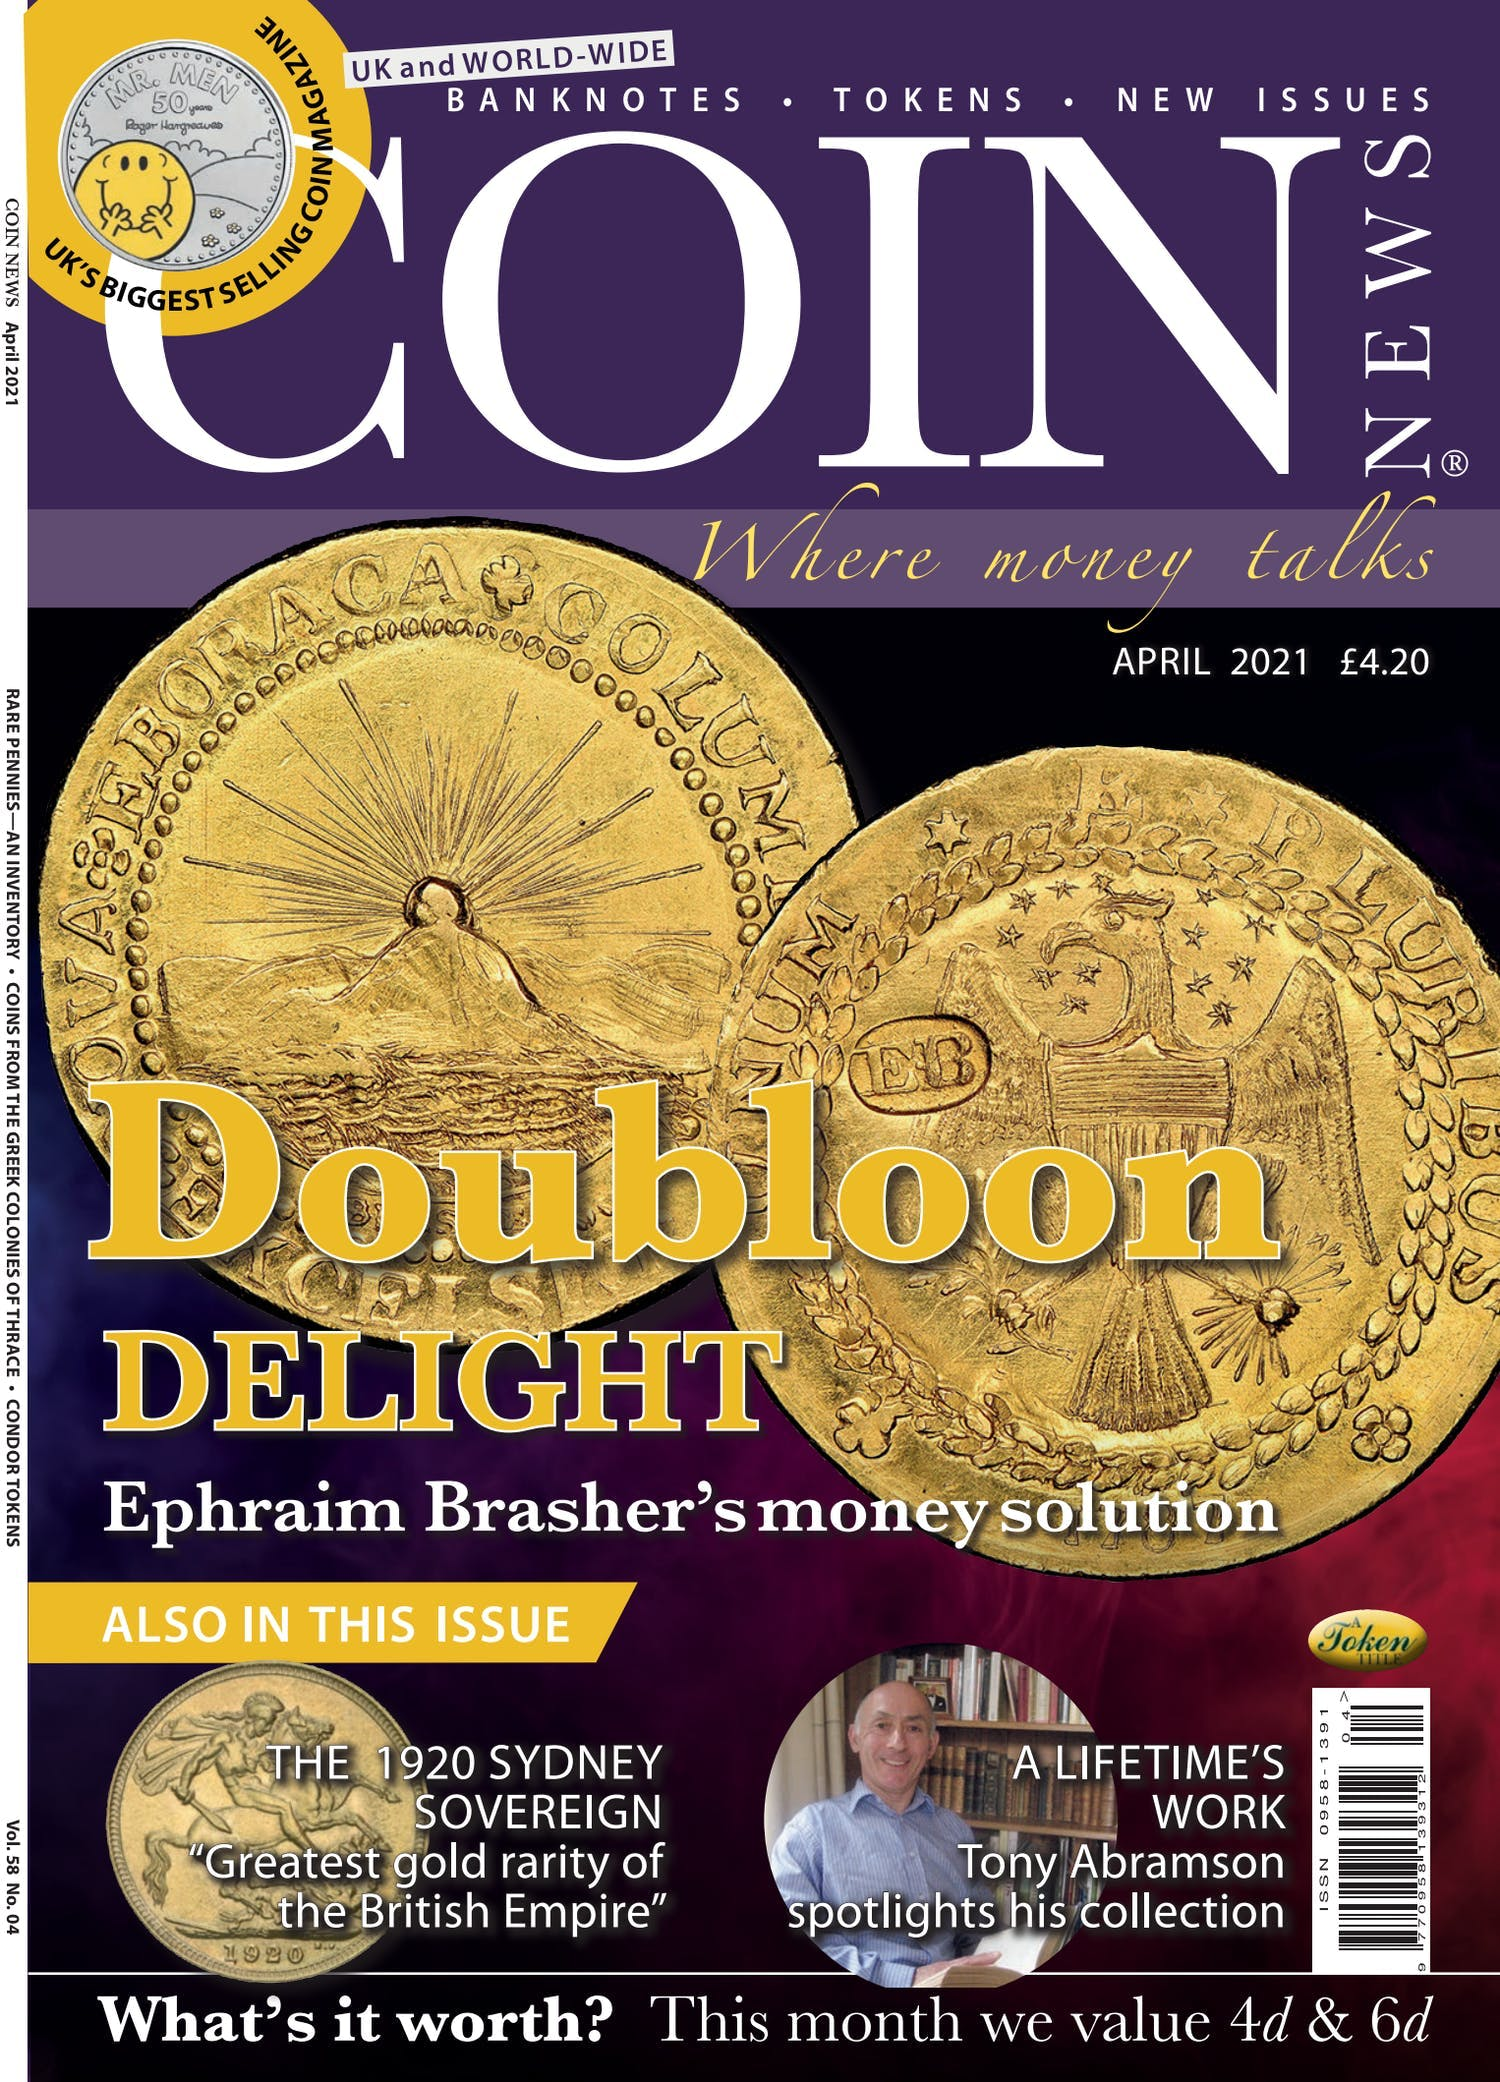 The front cover of Coin News, Volume 58, Number 4, April 2021